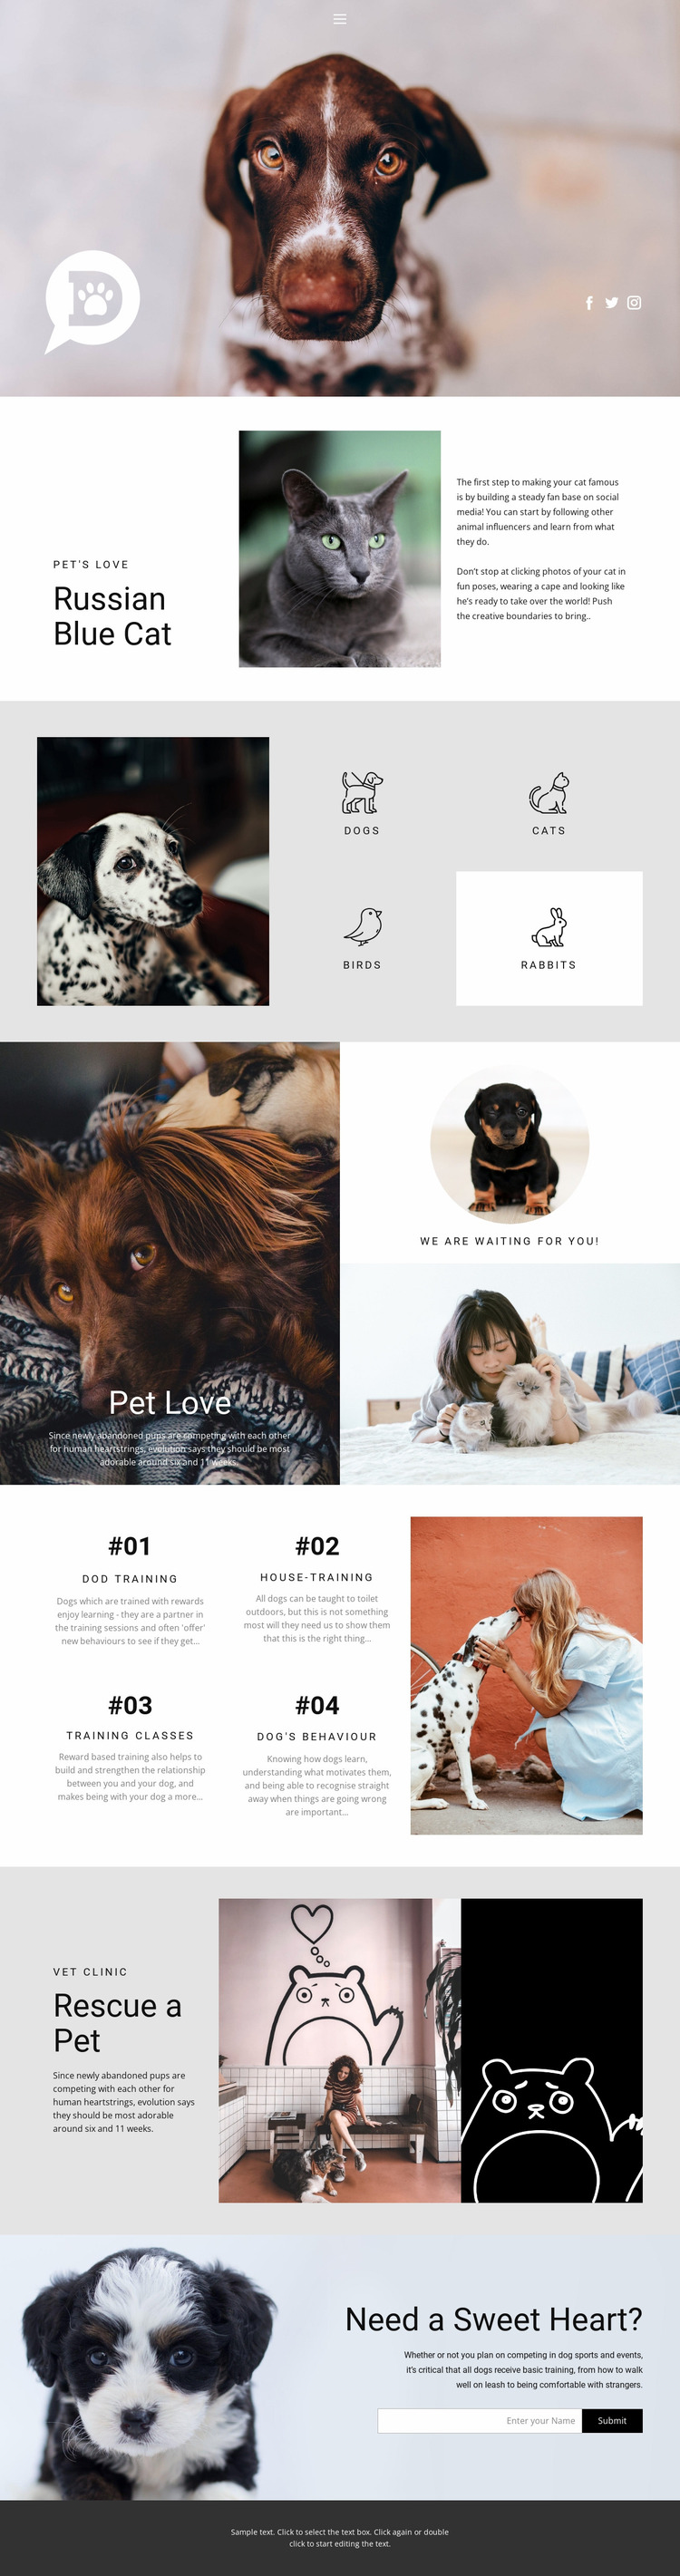 Care for pets and animals Website Mockup